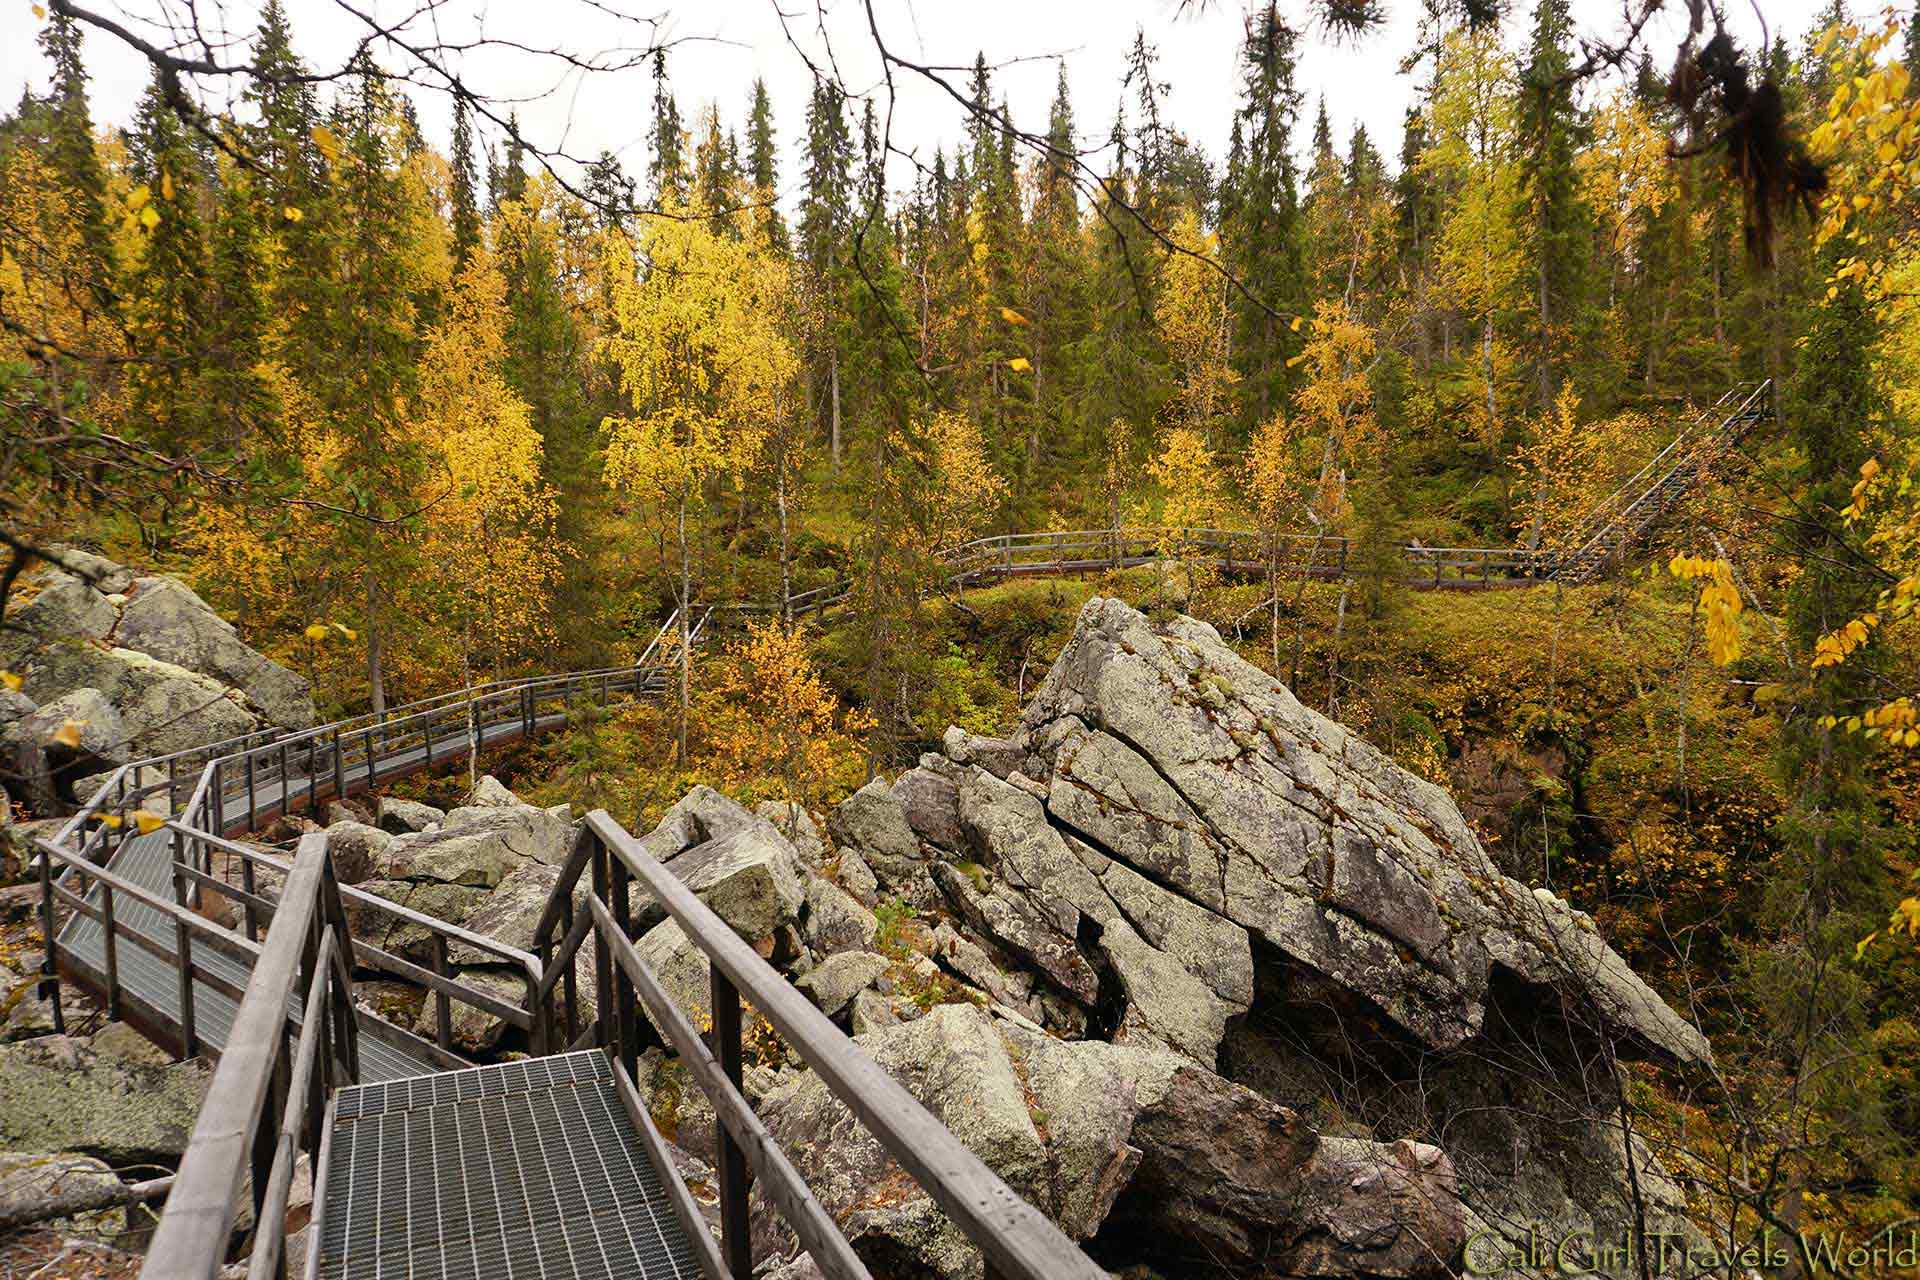 A pathway along the cliffs of the Finnish forest near Auttikongas waterfall